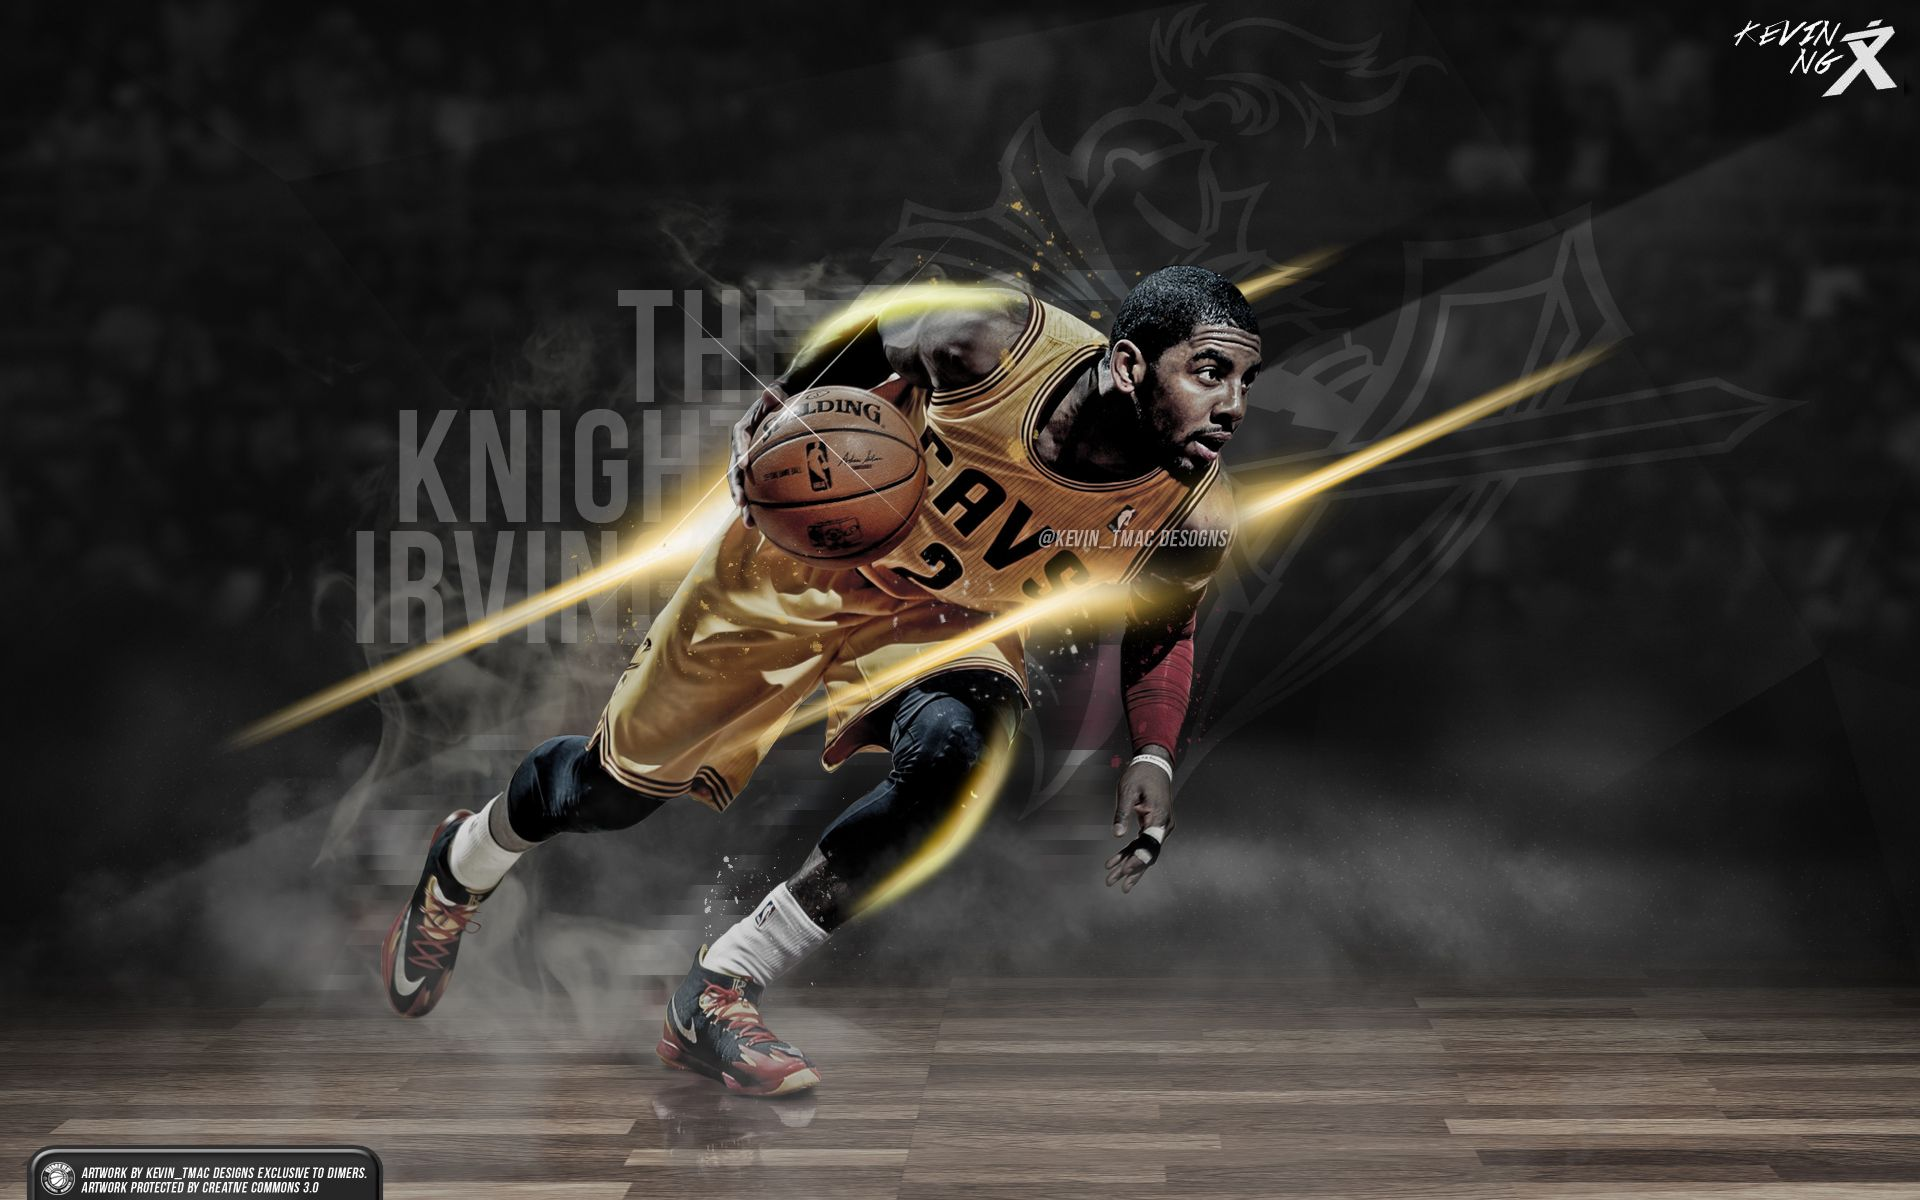 kyrie_irving__the_knight__wallpaper_by_kevin_tmac-d7uoi62 ...